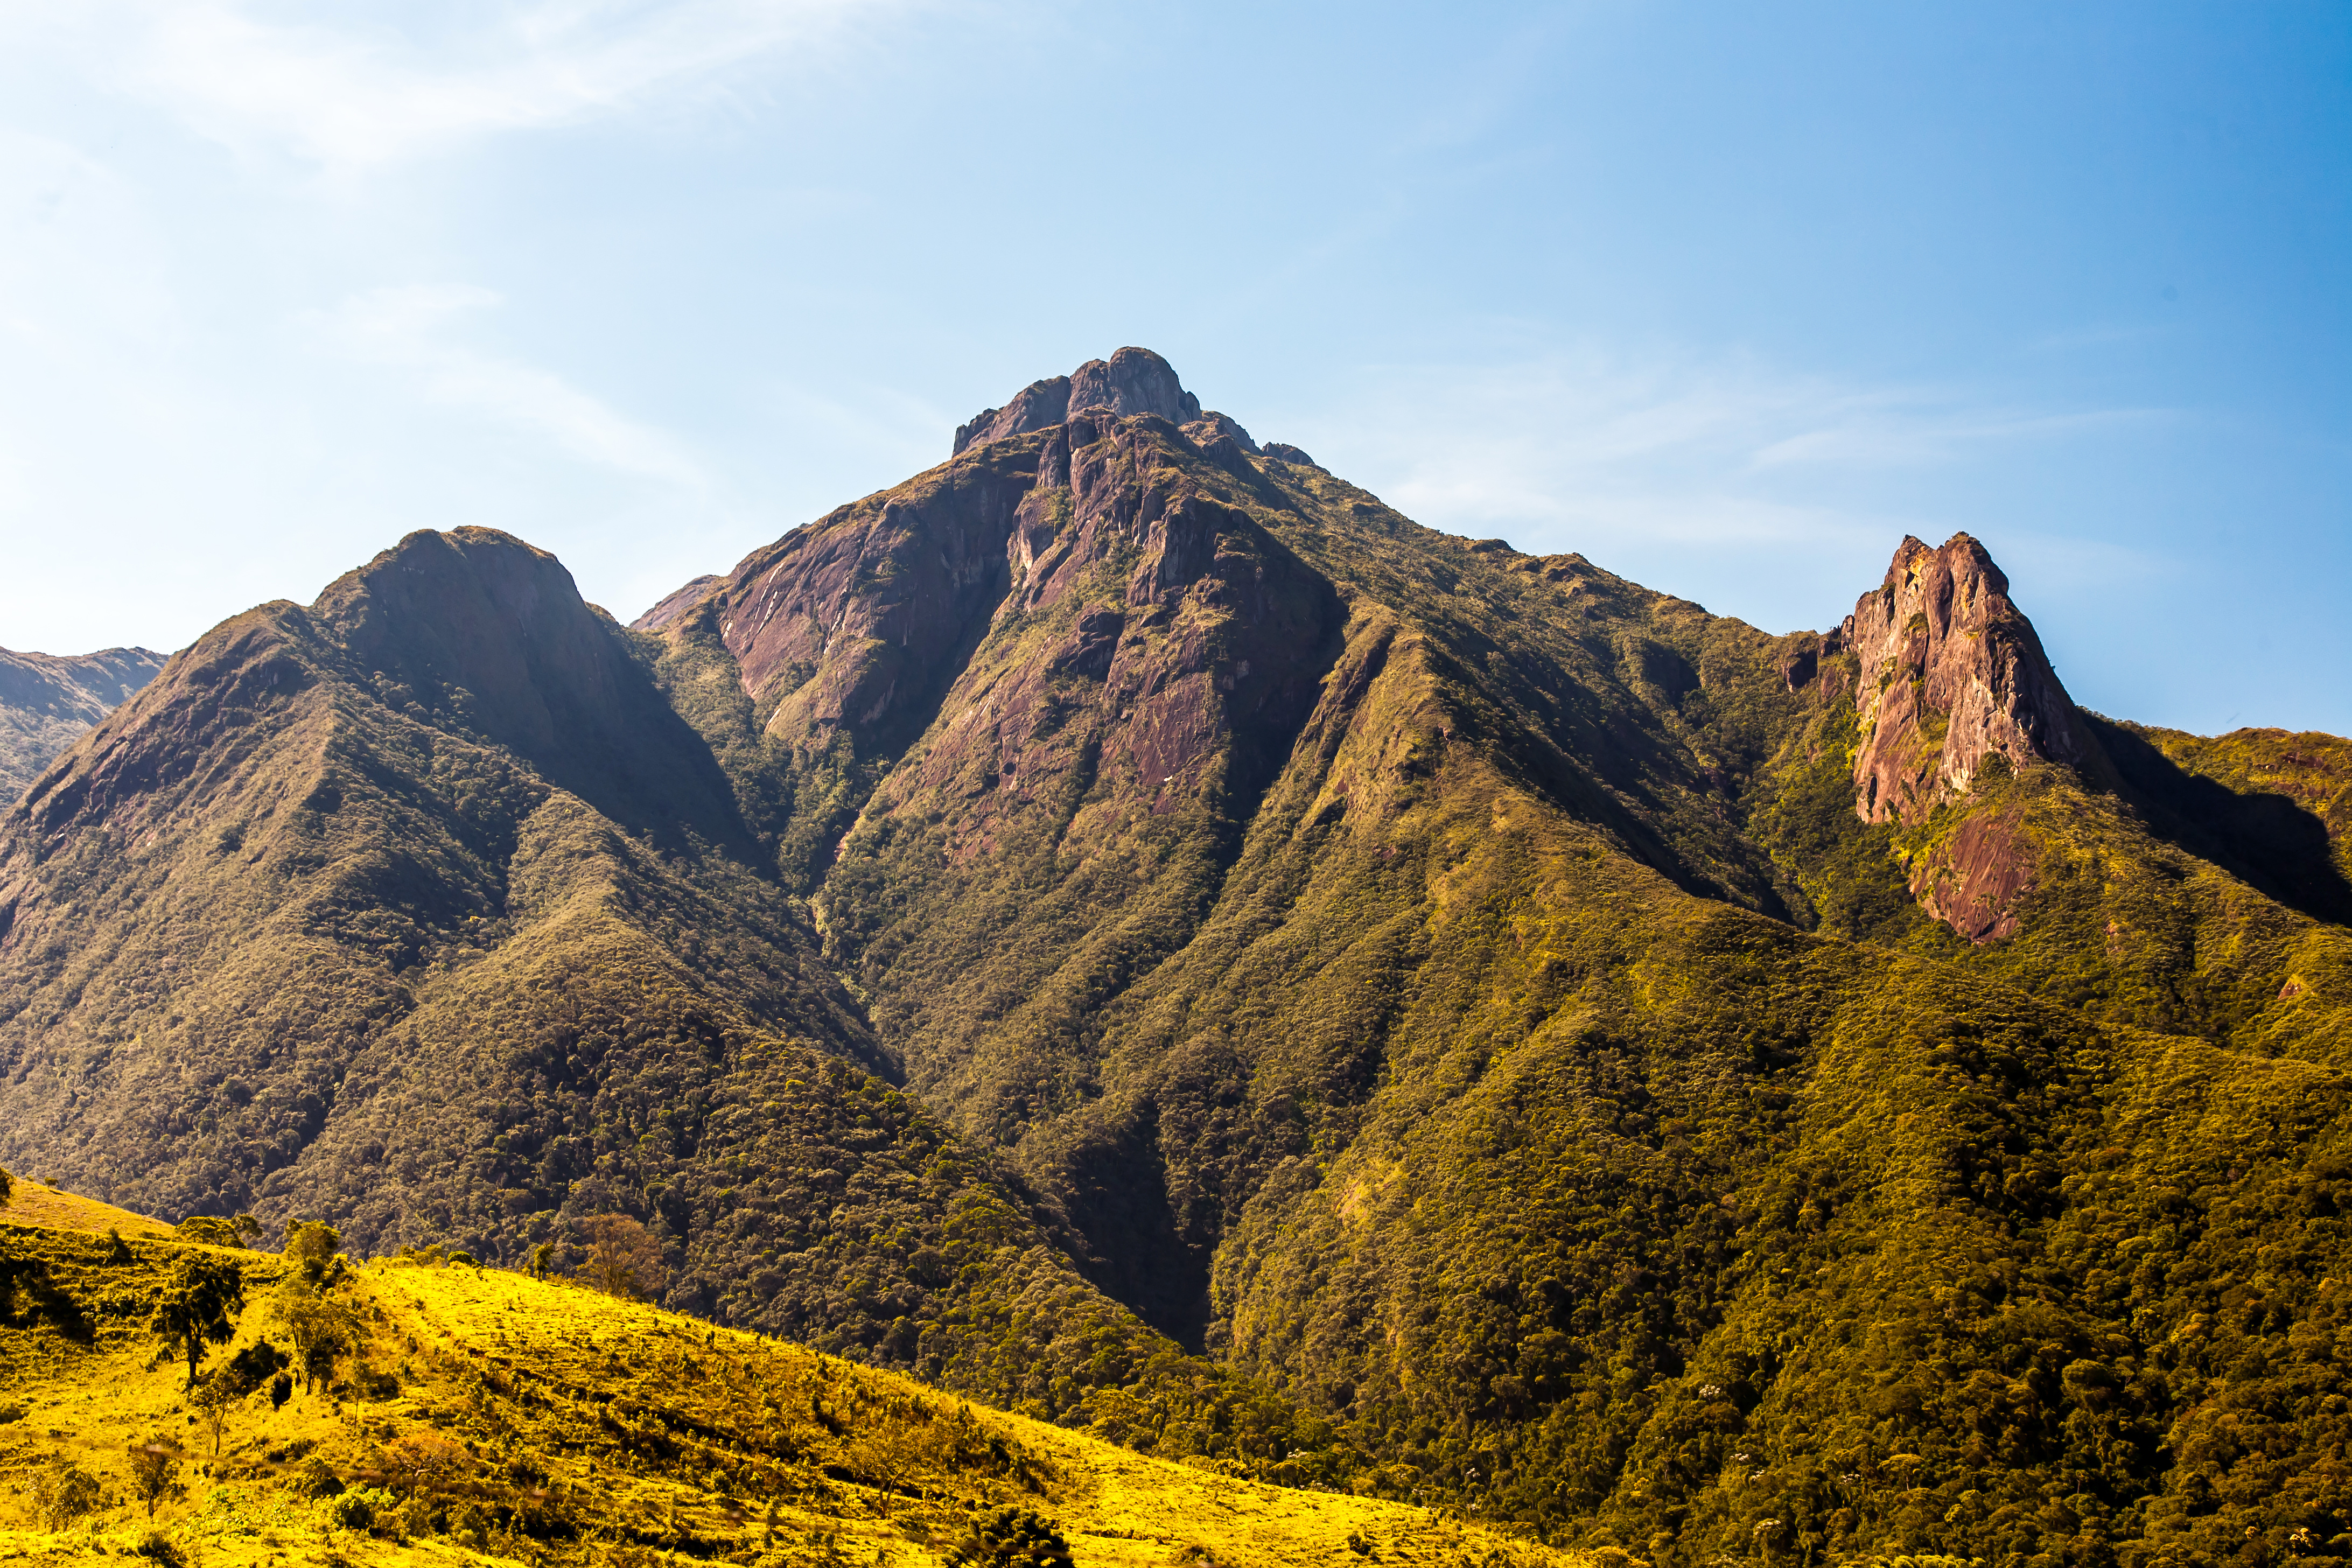 Brazilian highlands mountains lit with the sun